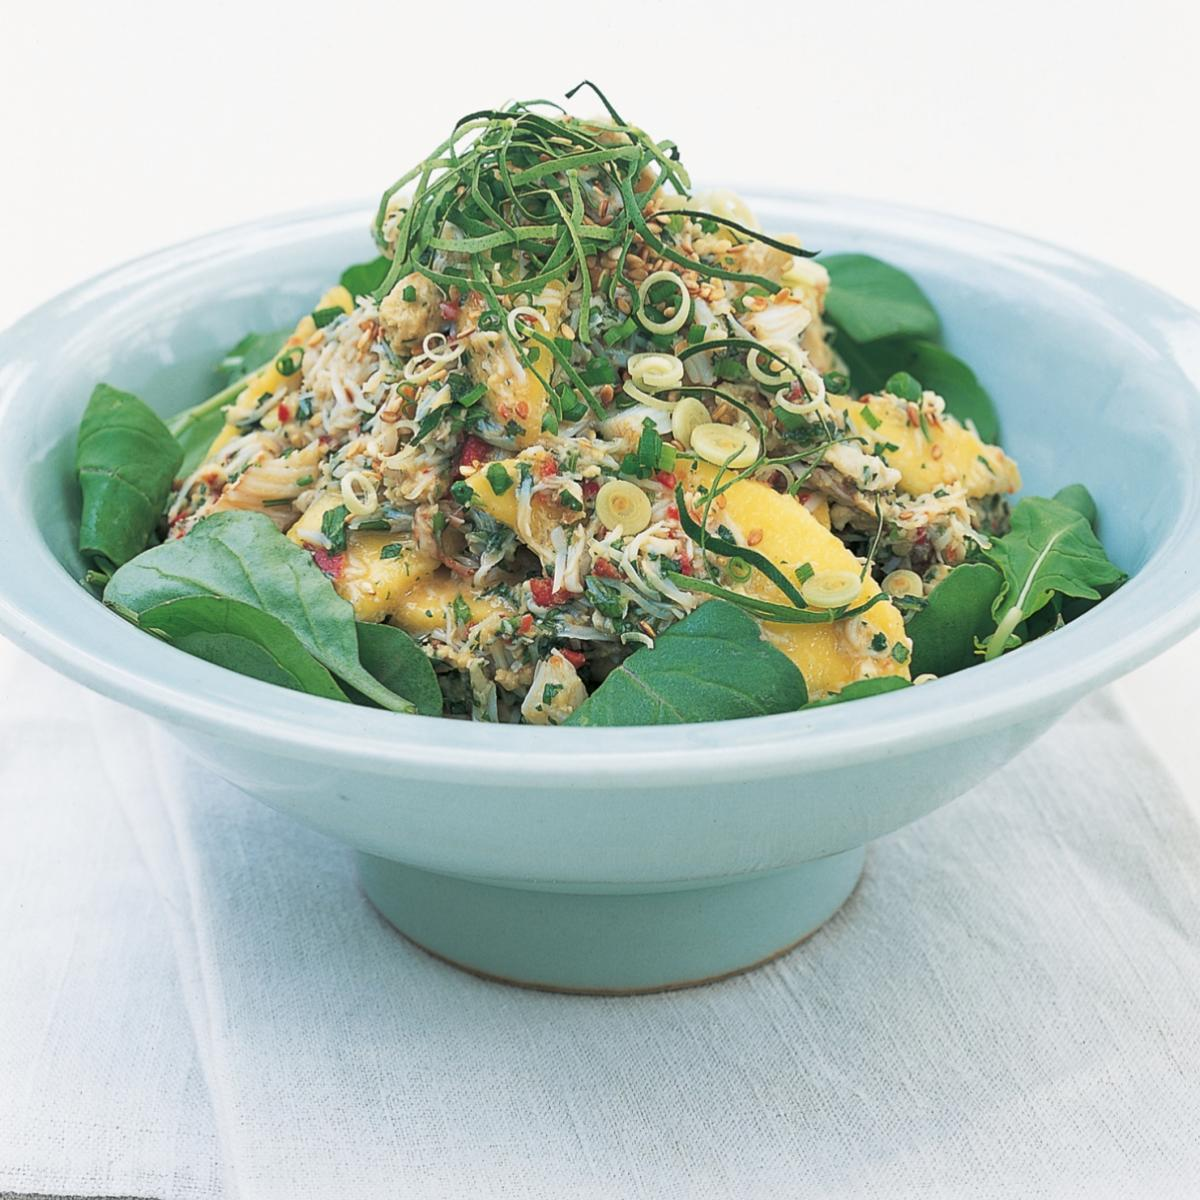 A picture of Delia's Thai Crab Salad with Mango recipe